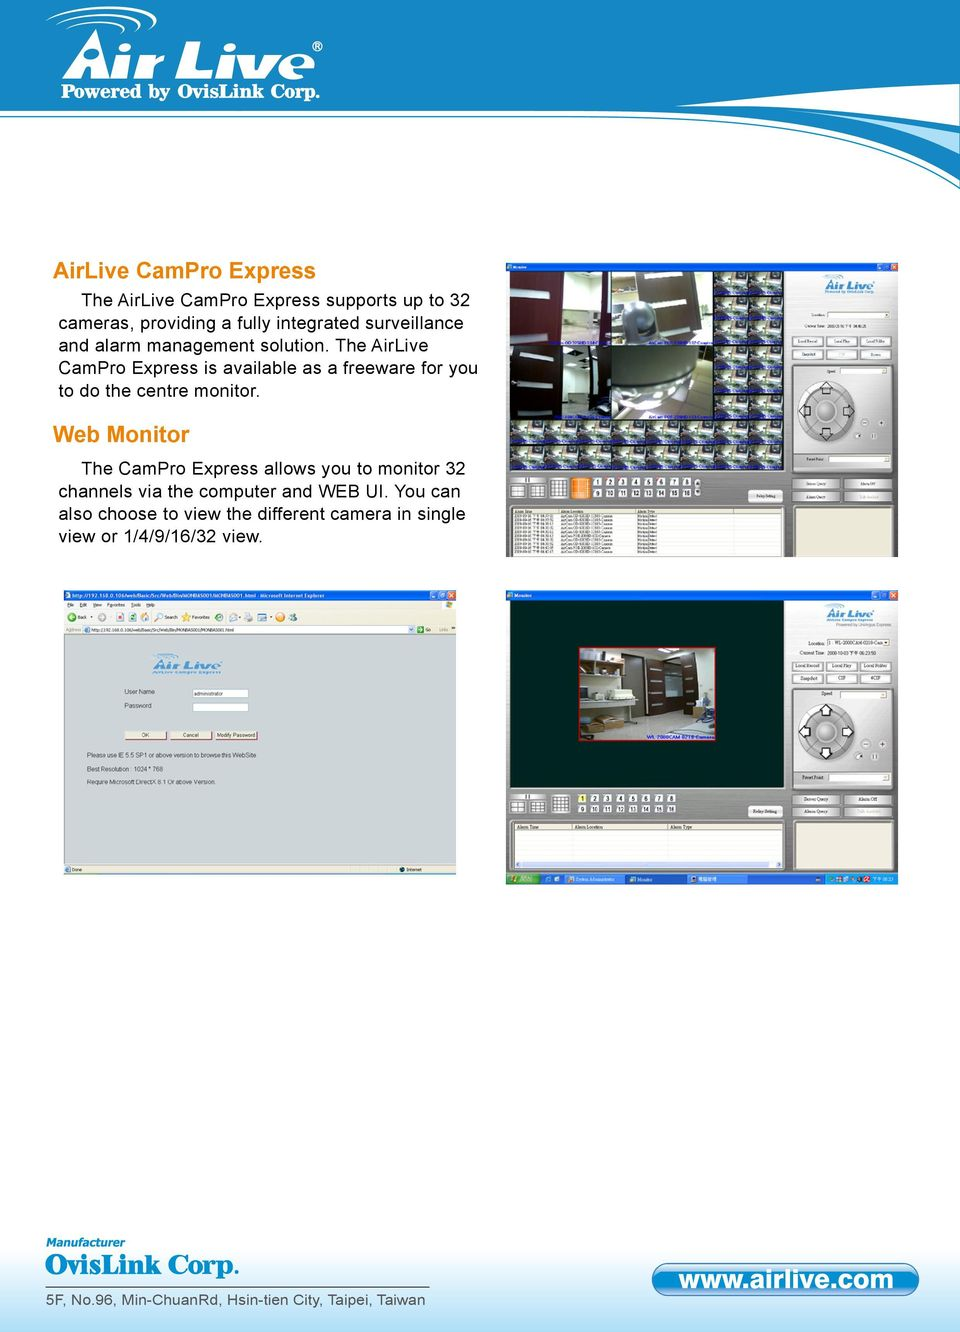 The AirLive CamPro Express is available as a freeware for you to do the centre monitor.